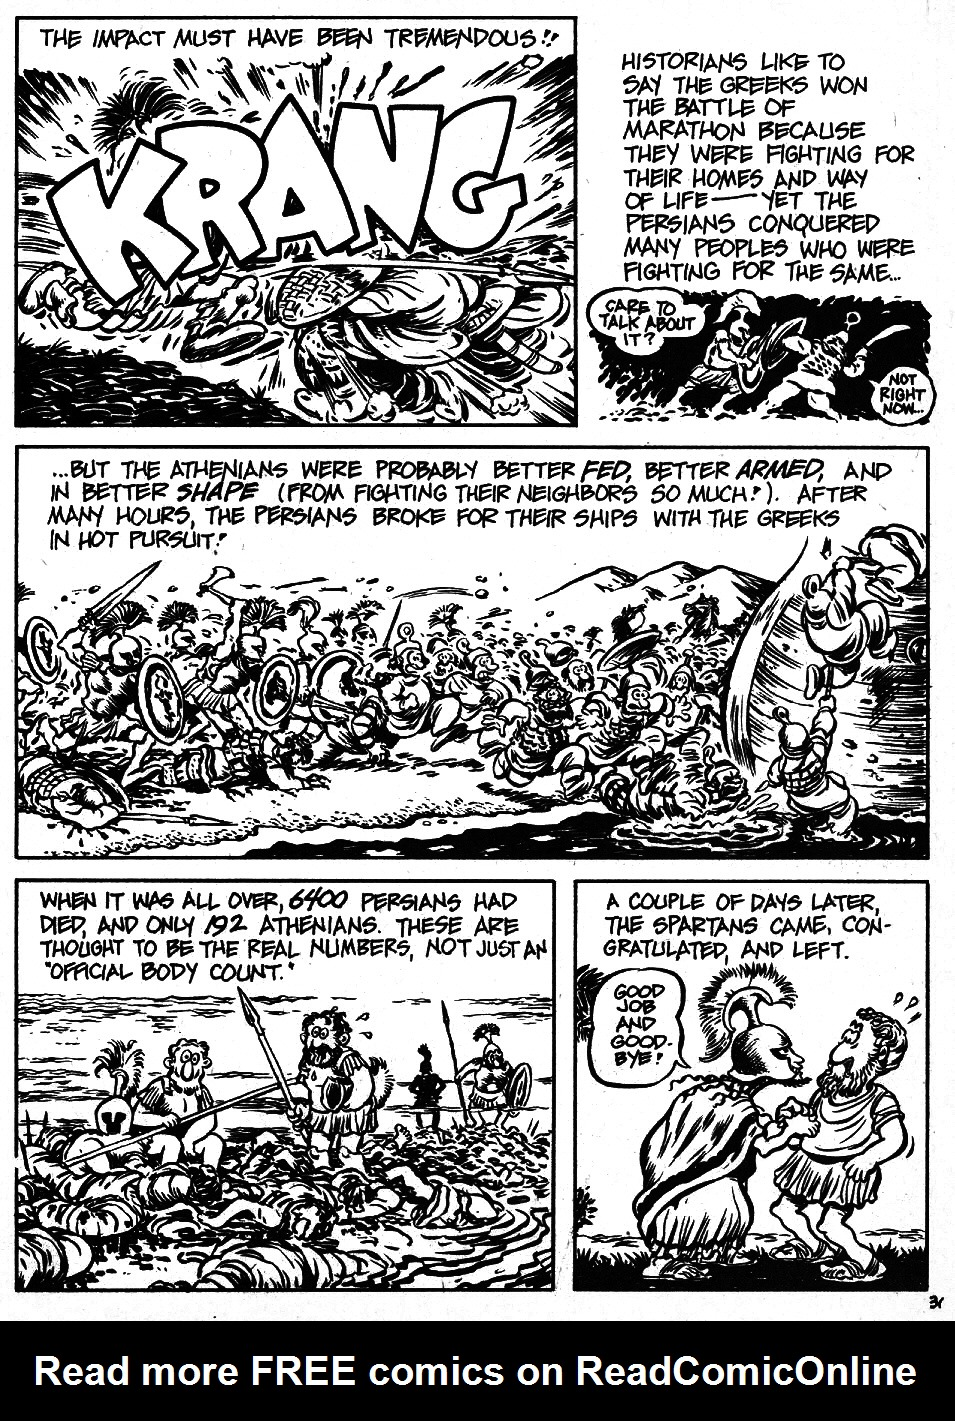 Read online The Cartoon History of the Universe comic -  Issue #6 - 33